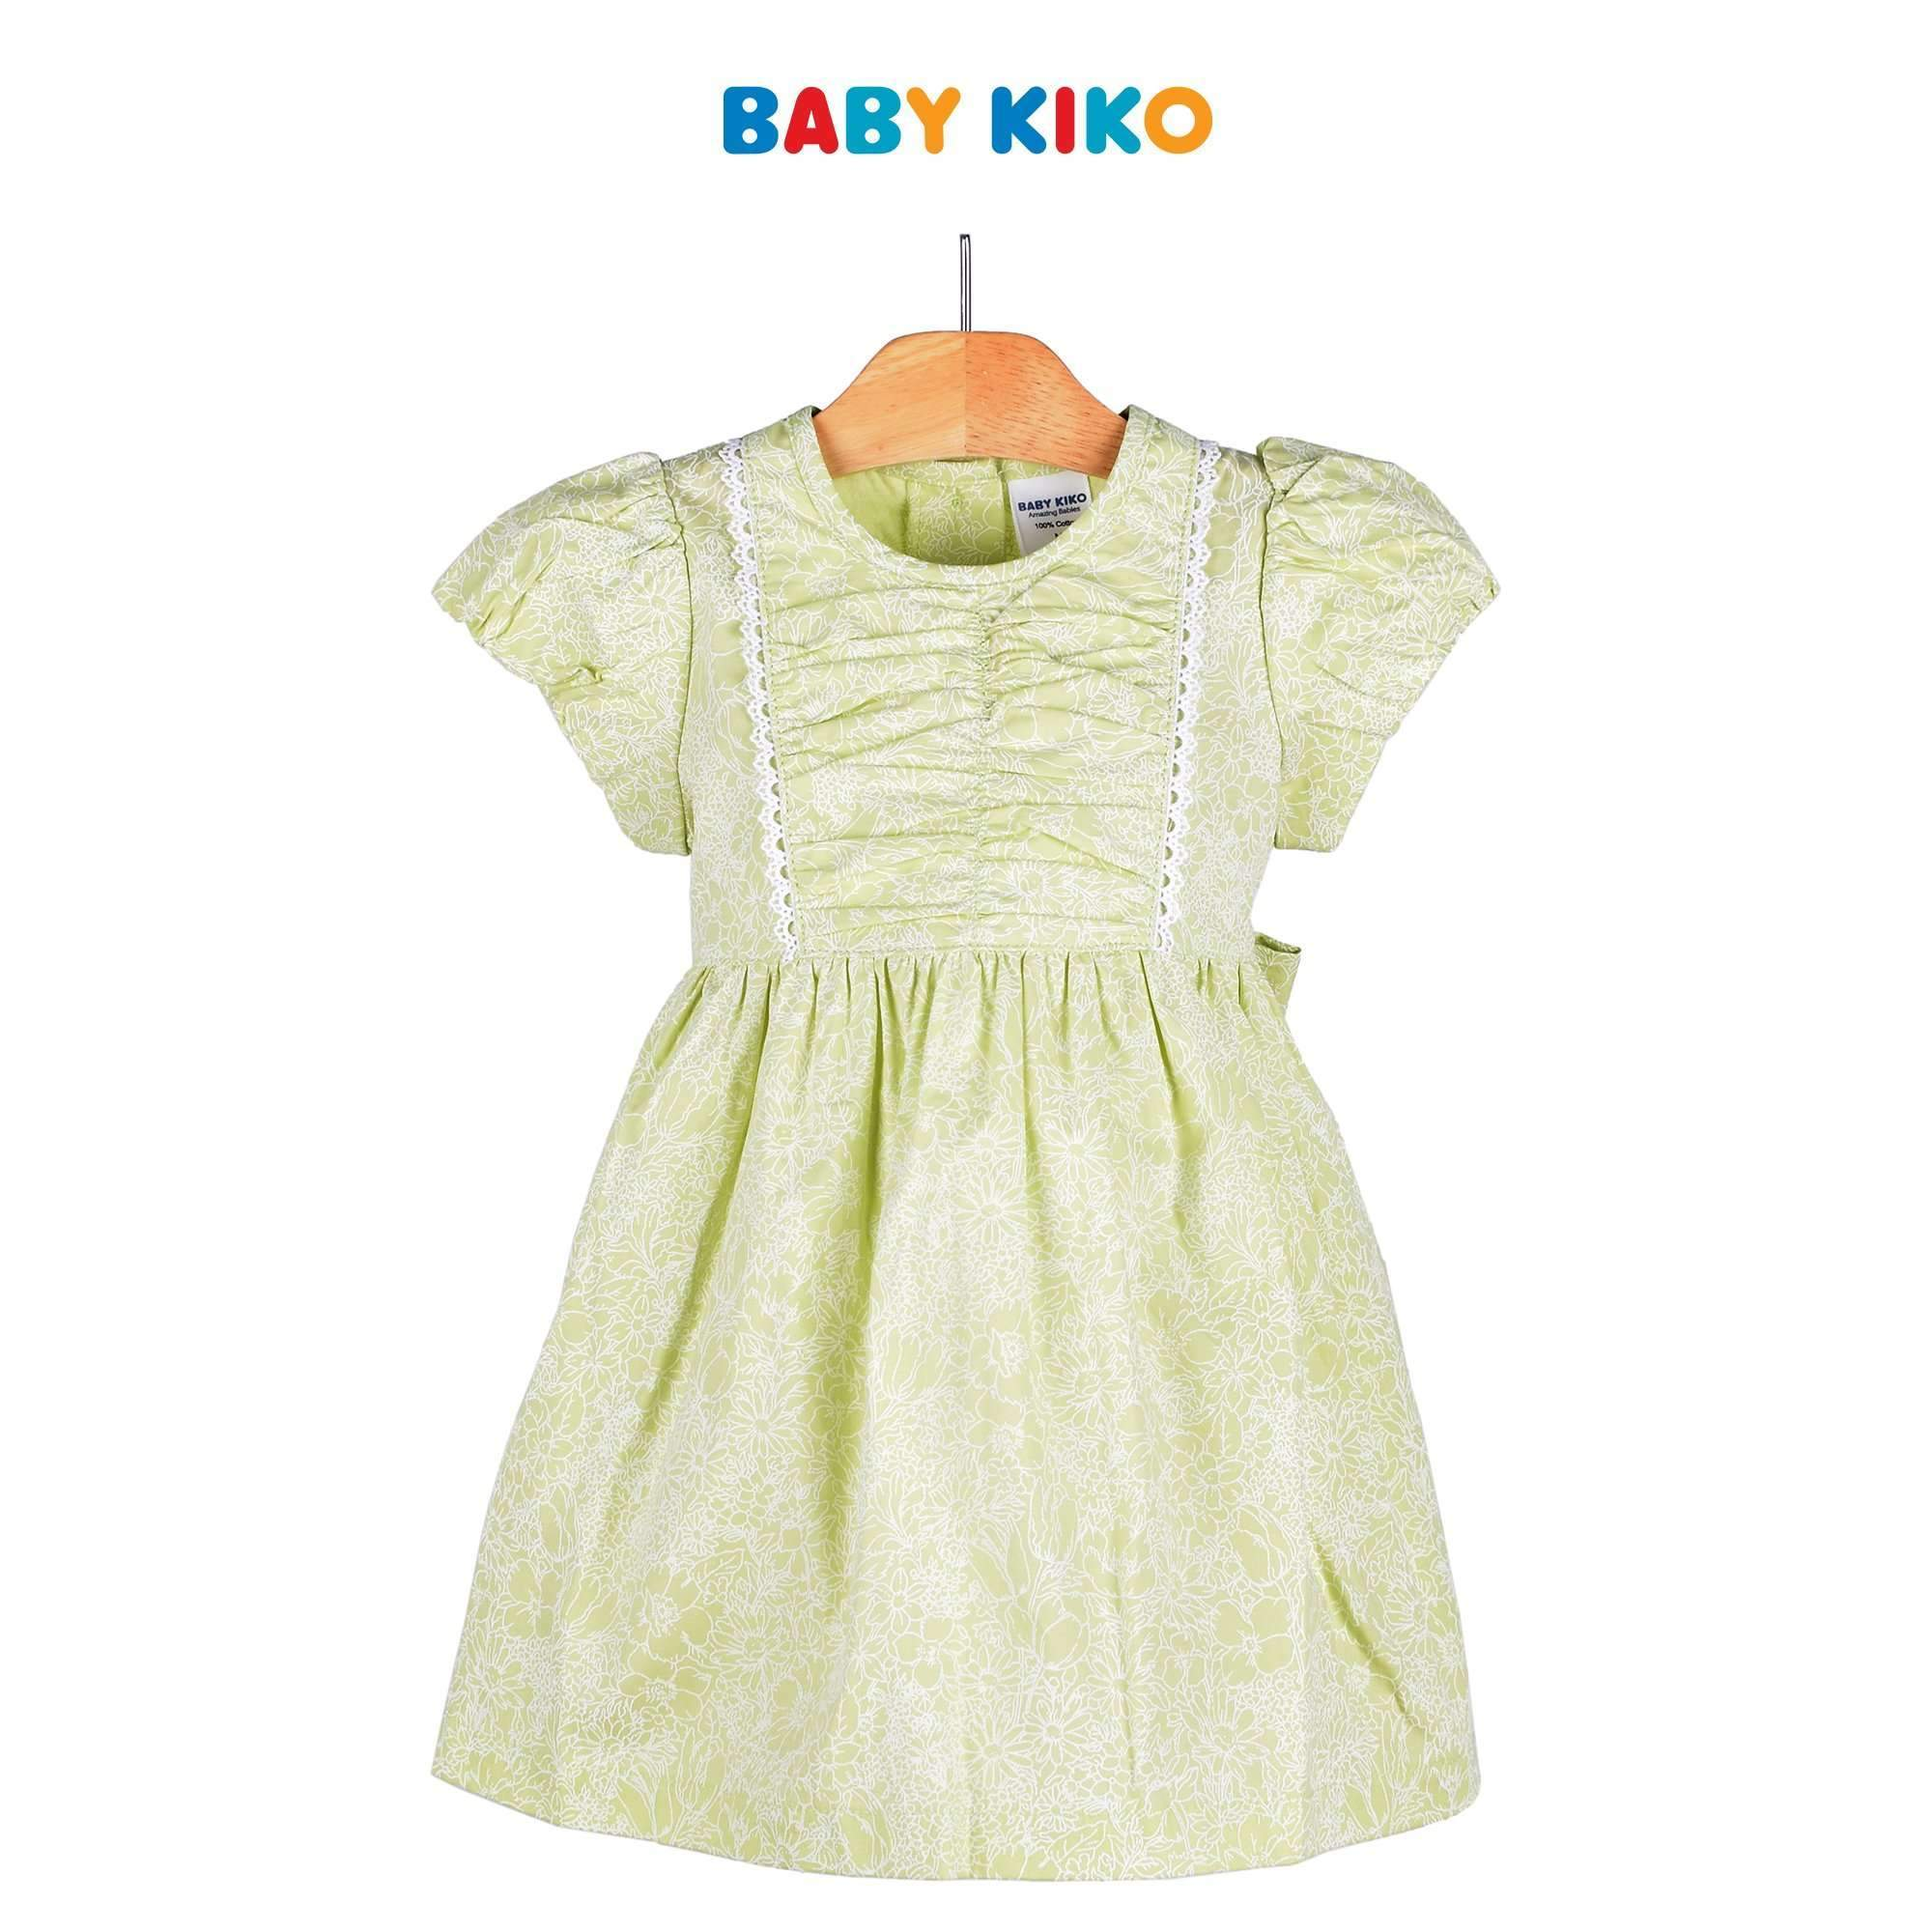 Baby KIKO Toddler Girl Short Sleeve Dress 315072-312 : Buy Baby KIKO online at CMG.MY